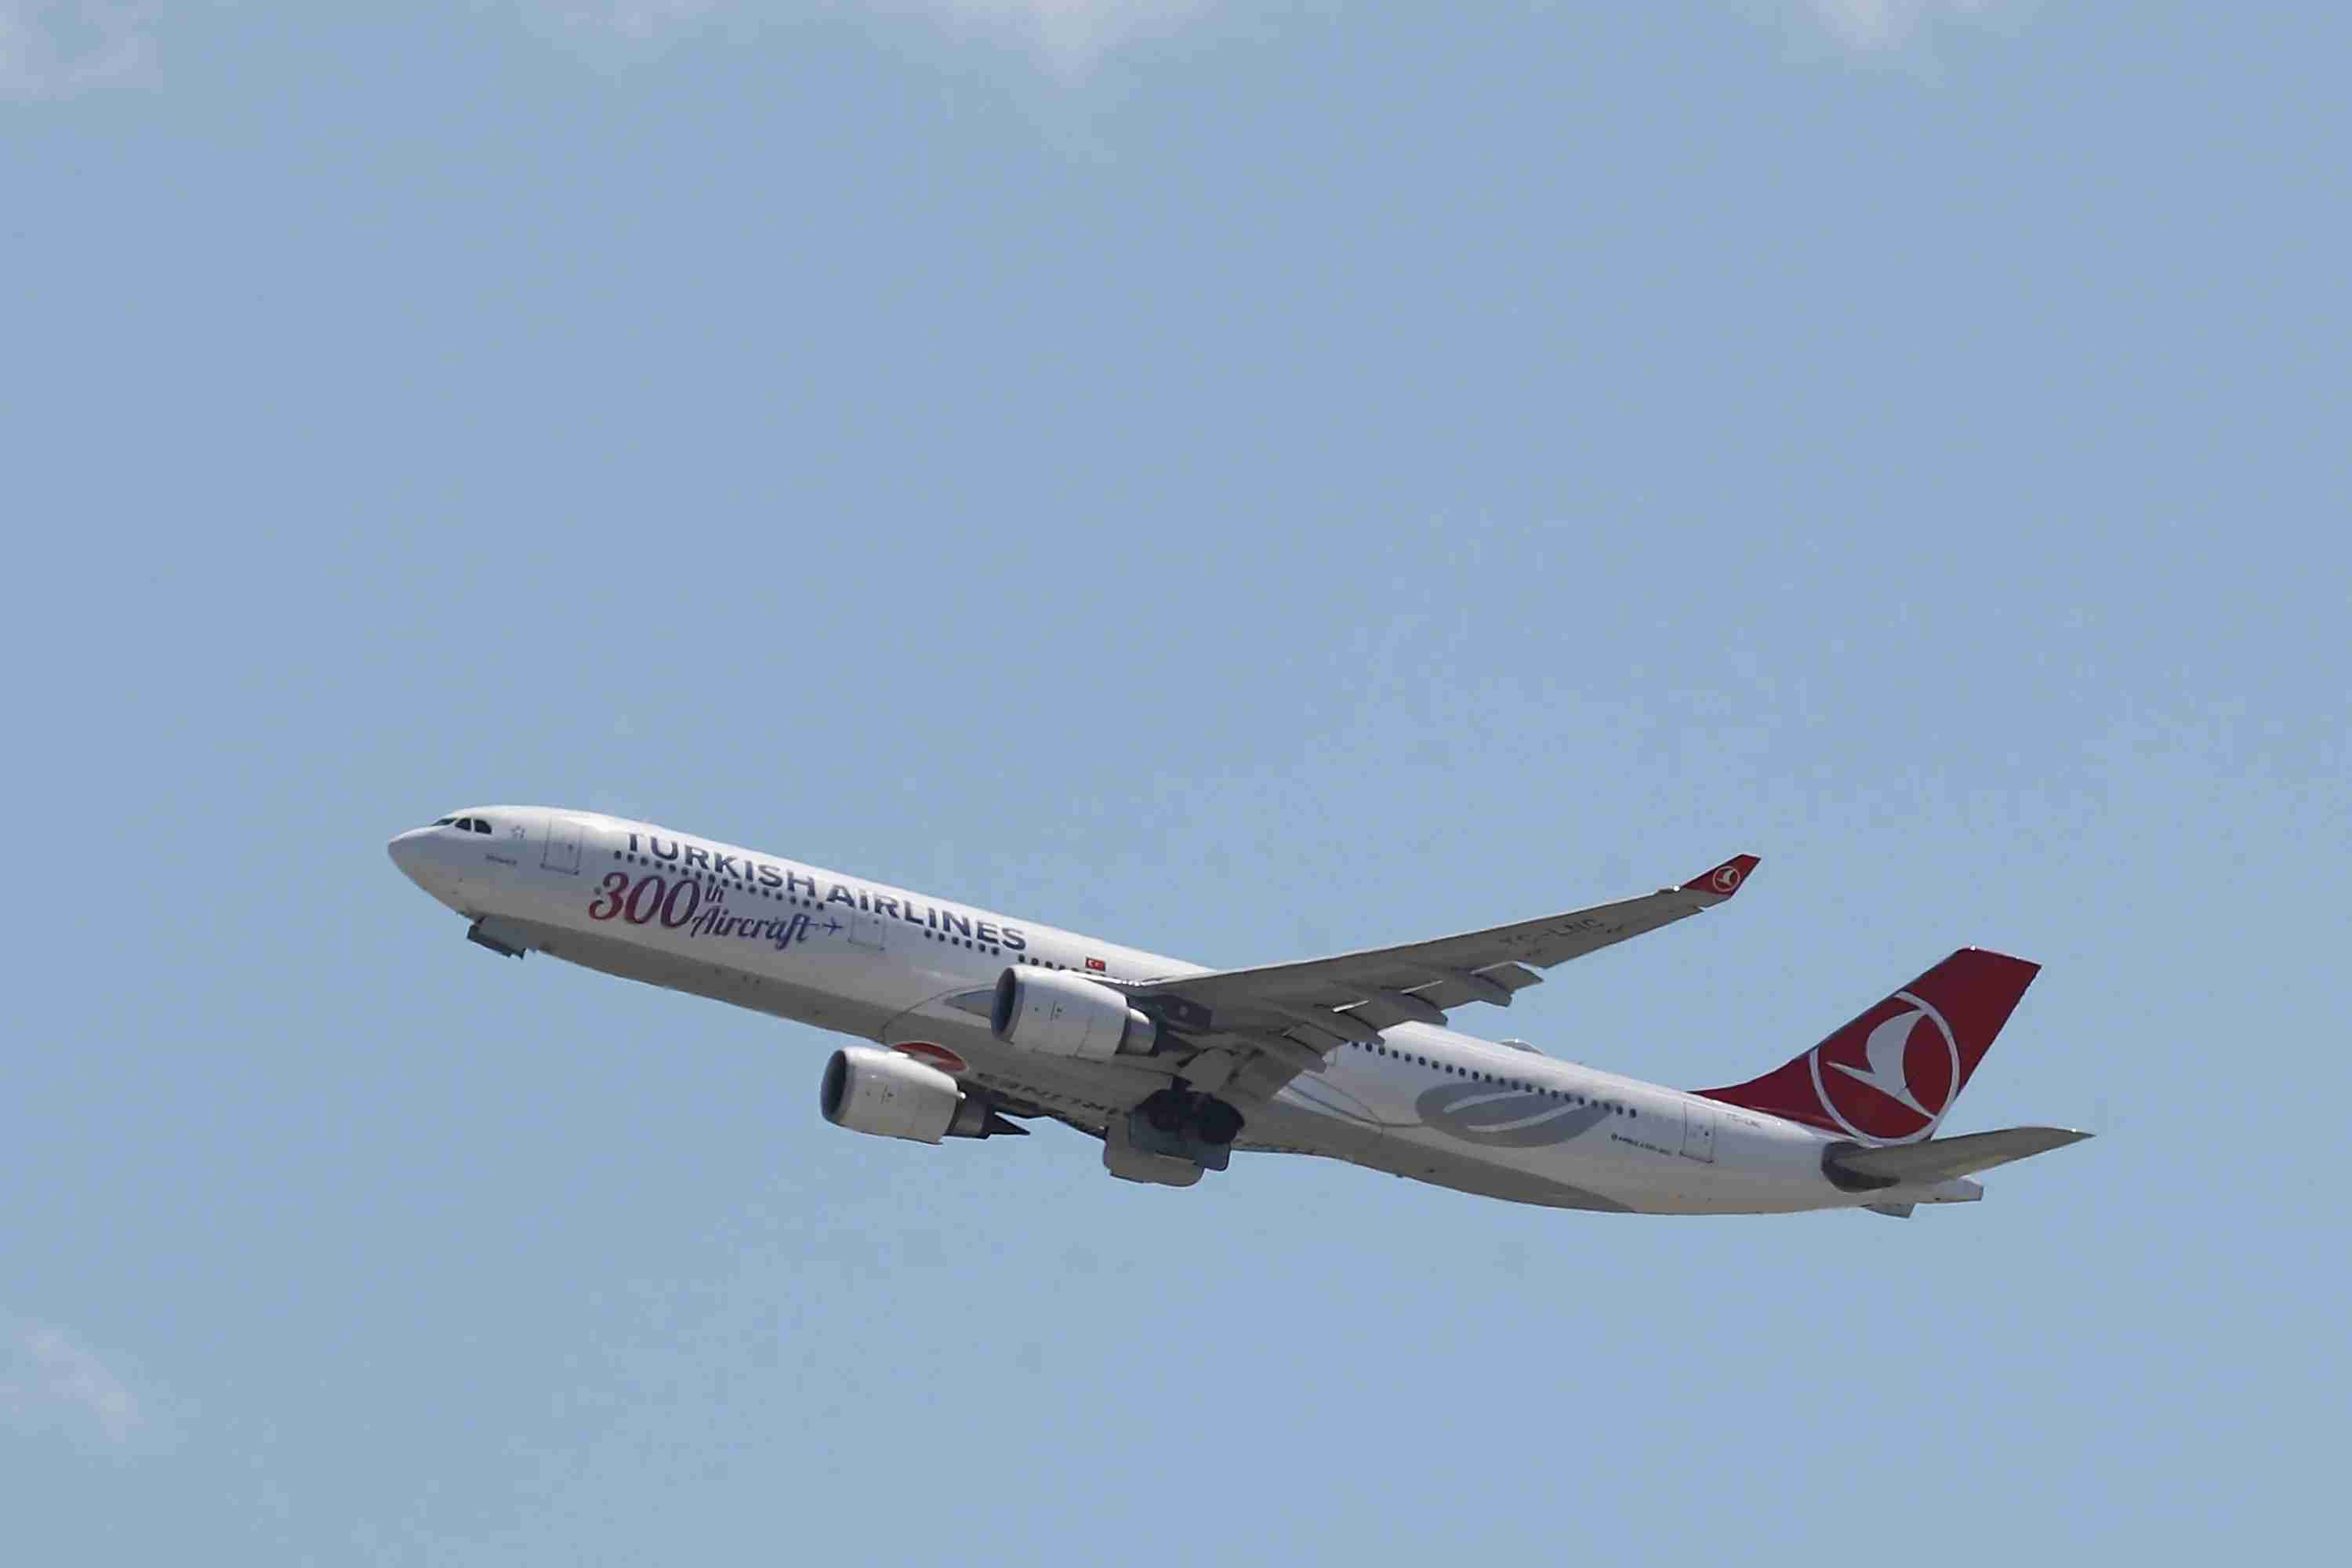 An Airbus A330 operated by Turkish Airlines takes off from JFK Airport on Aug. 24, 2019. (Photo by Bruce Bennett/Getty Images)